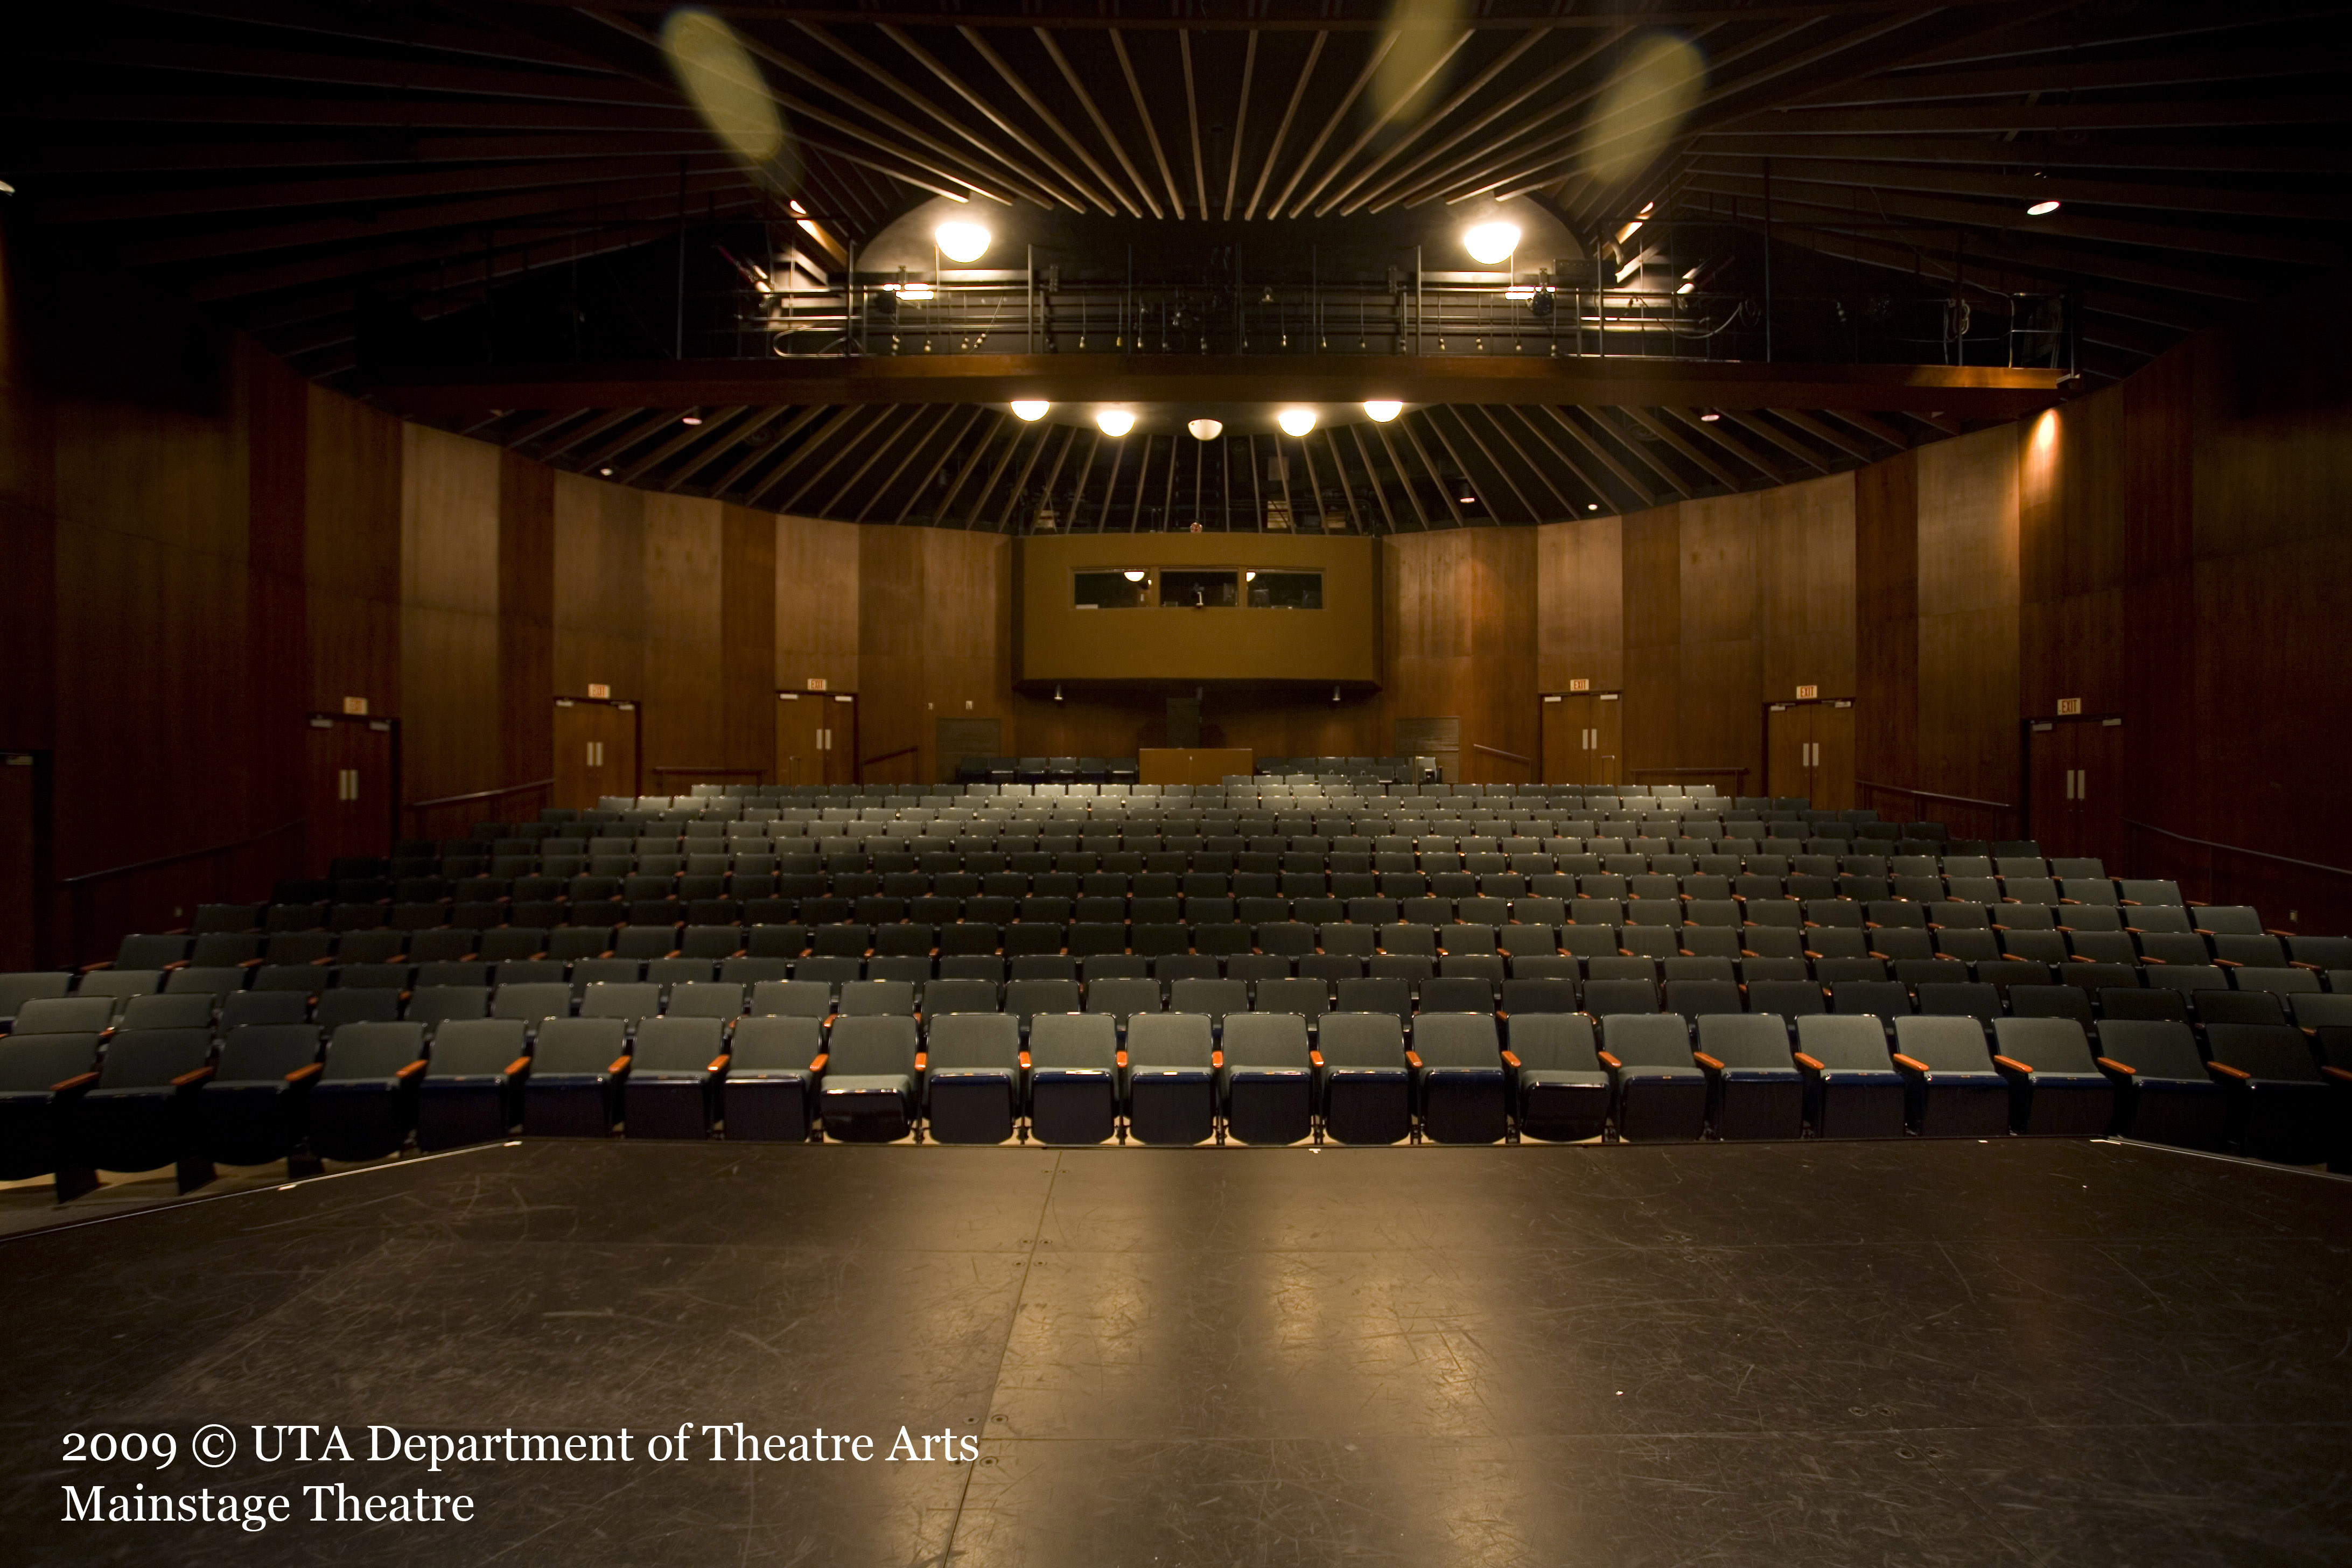 Stage and theatre